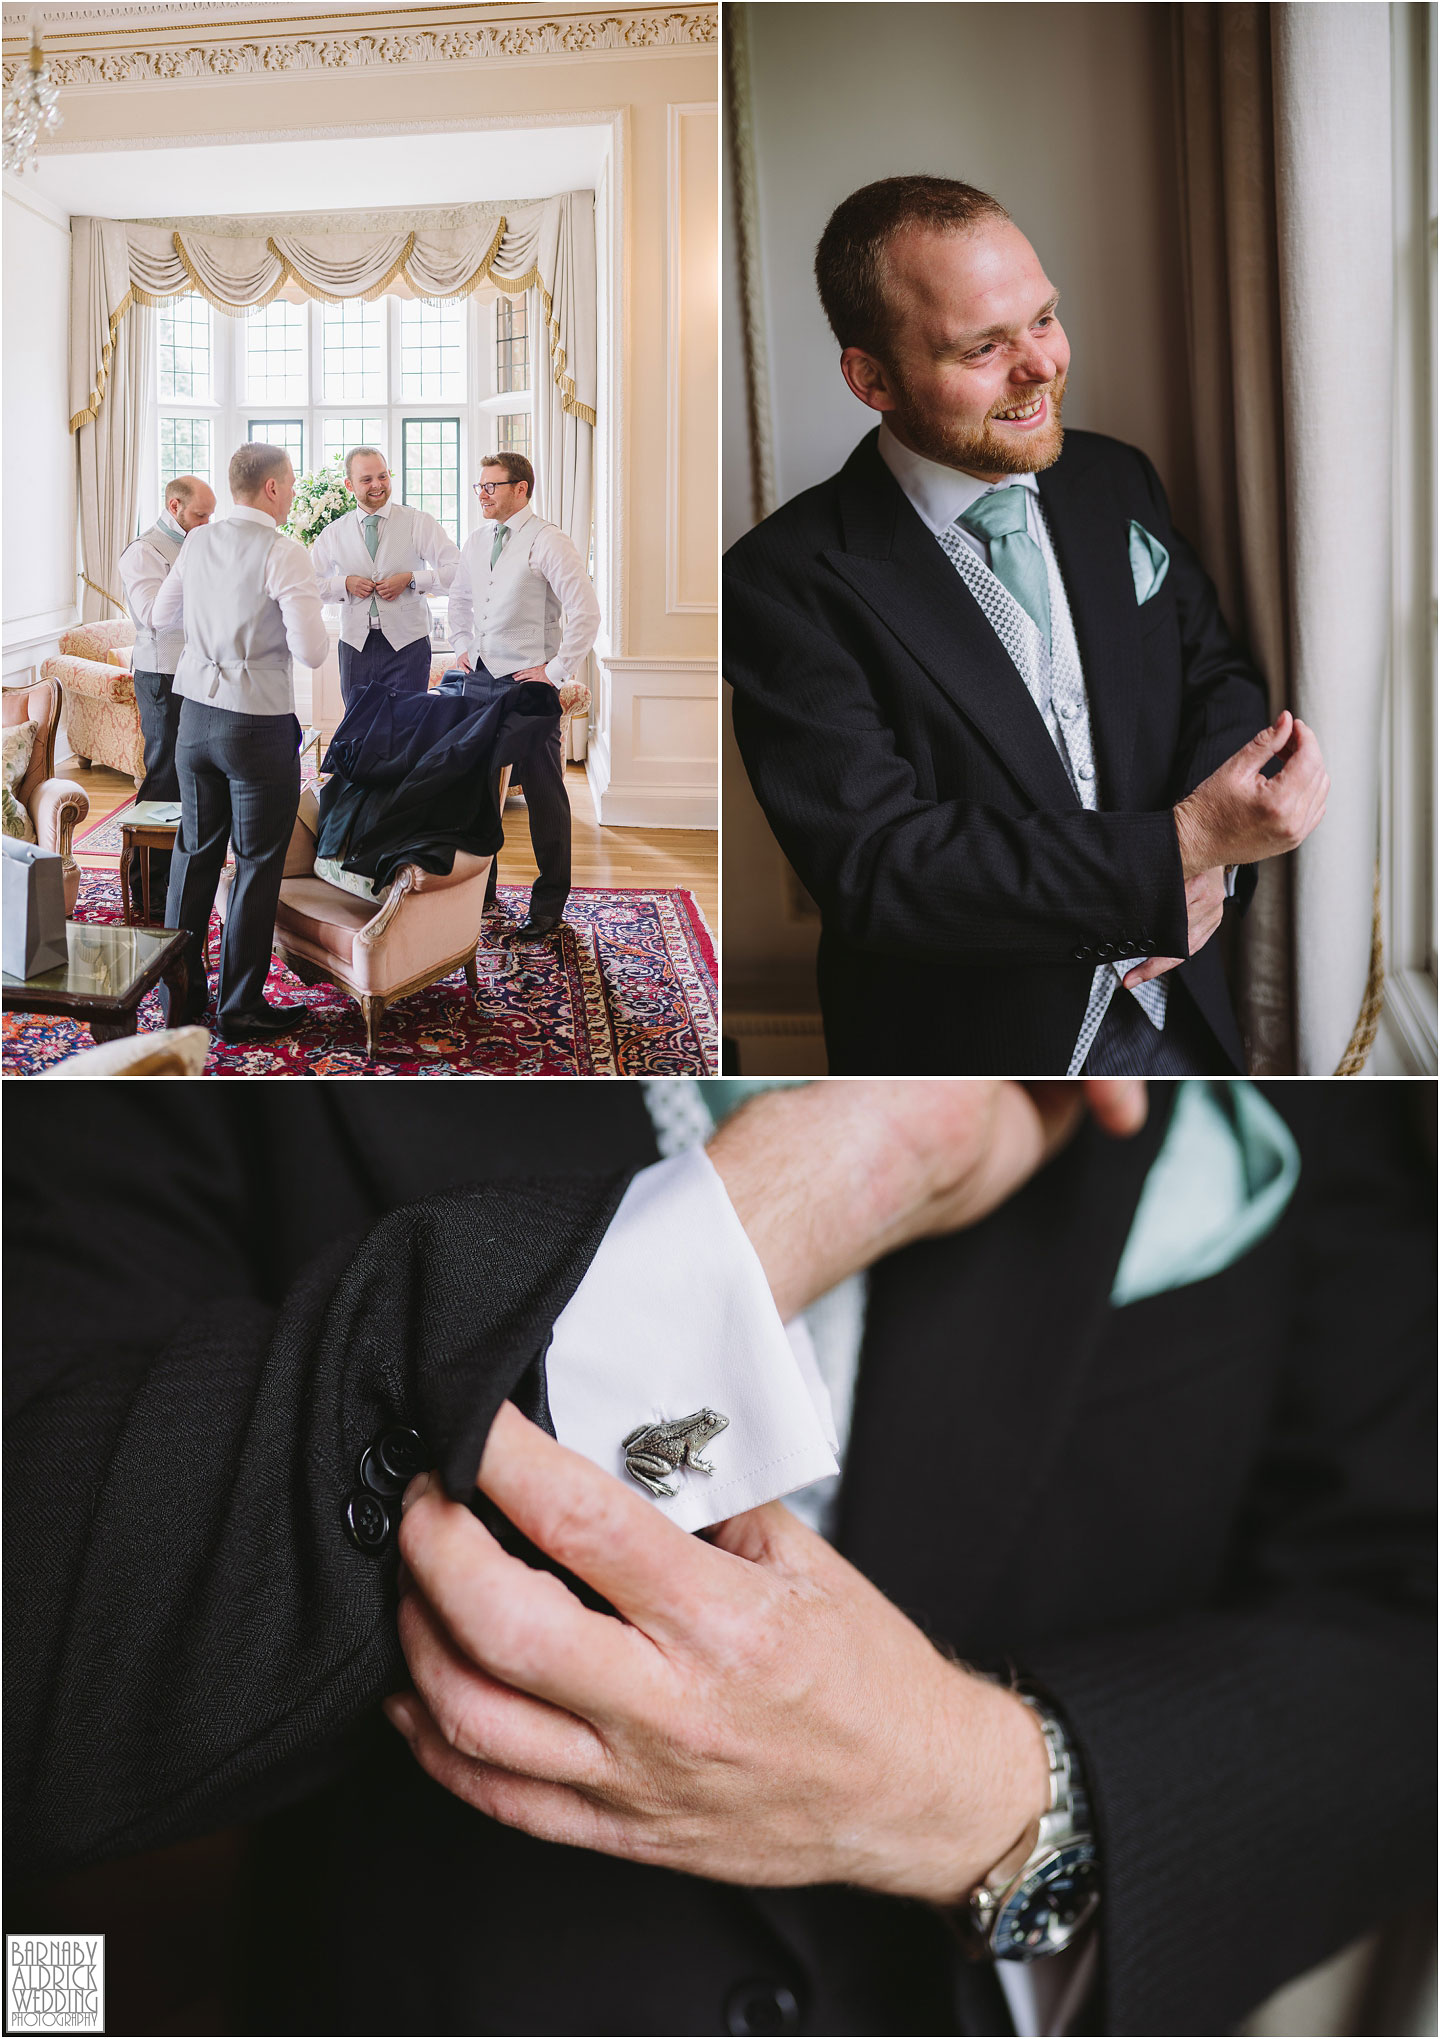 Grooms preparations at Goldsborough Hall Wedding Photos, Goldsborough Hall Wedding Photography, Yorkshire Wedding, Yorkshire Wedding Photographer, Knaresborough Wedding, Harrogate wedding venue, Yorkshire Stately House Wedding